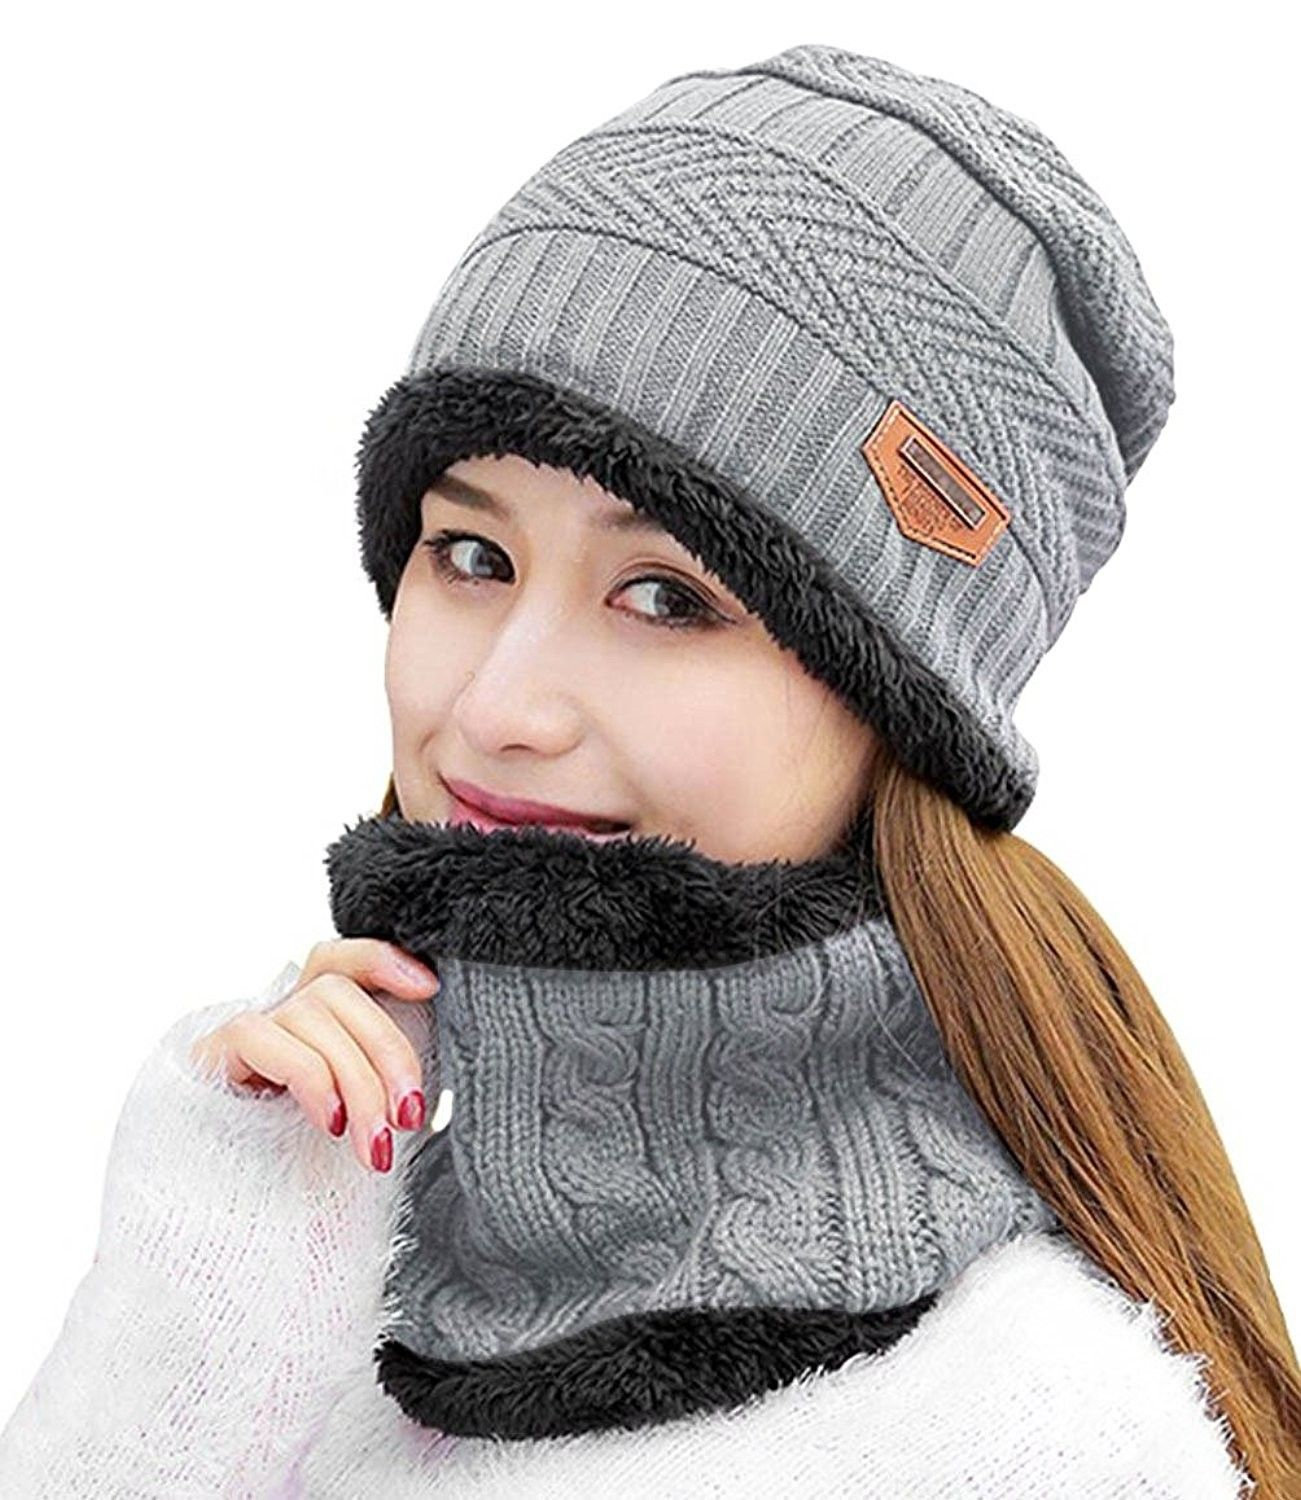 45fdcd2840744 Womens Beanie Winter Hat Scarf Set Slouchy Warm Snow Knit Skull Cap - Light  Grey - CE188EH3GWX - Hats   Caps